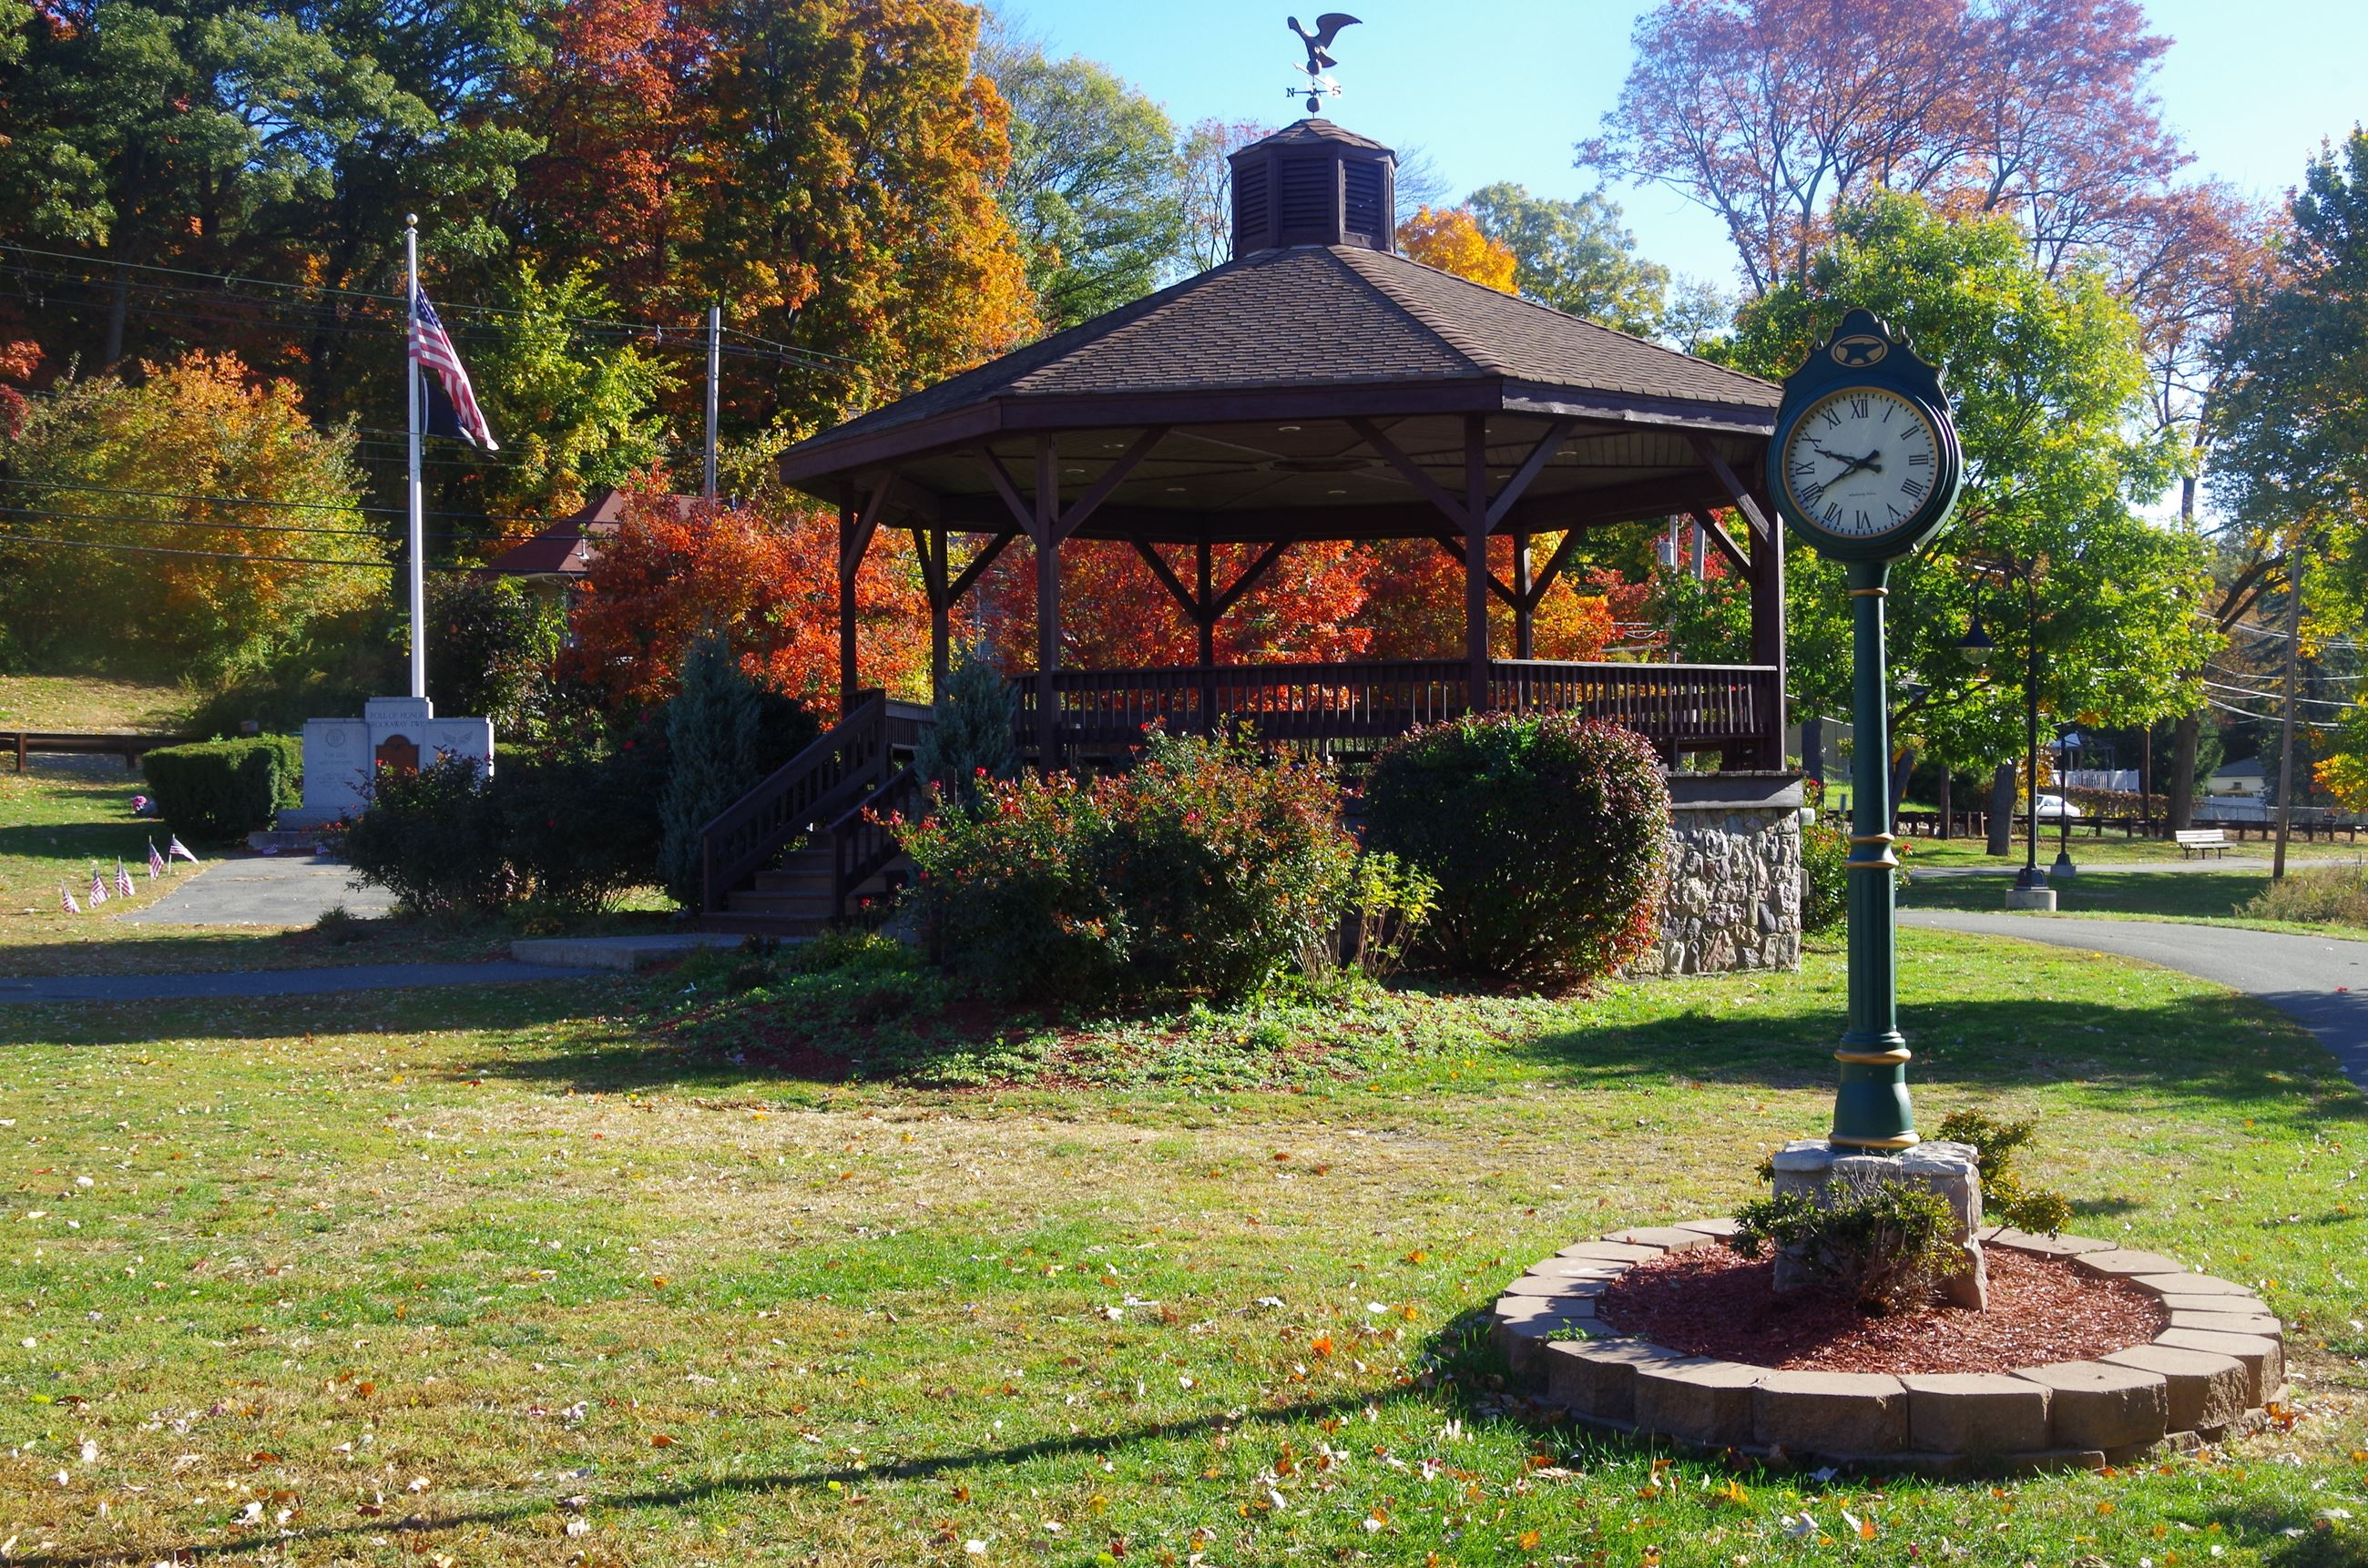 Parks Lake Gazebo Slideshow #1